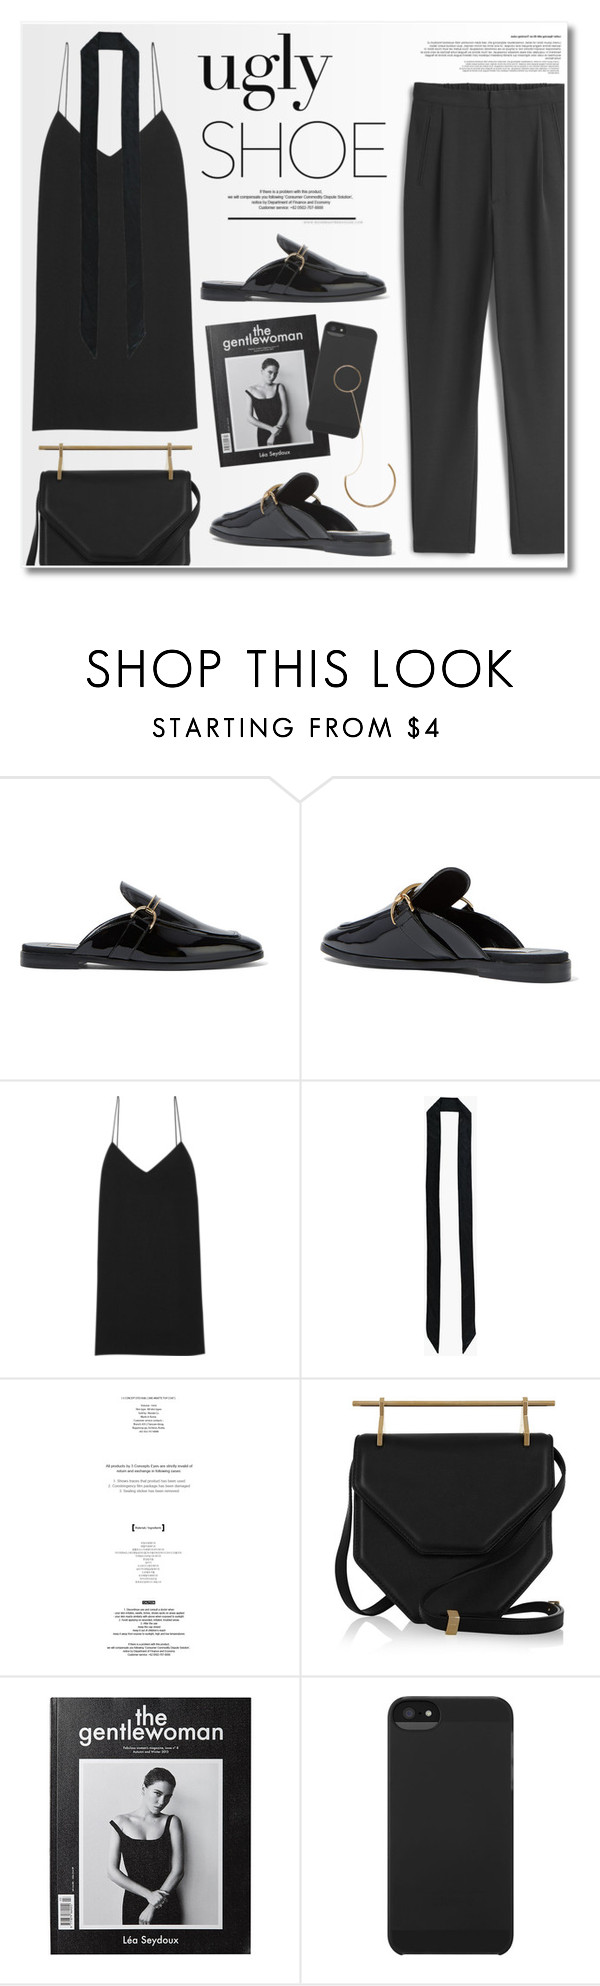 """""""Chic ugly shoes"""" by ruska-10 ❤ liked on Polyvore featuring STELLA McCARTNEY, The Row, Boohoo, StyleNanda, Pierre Hardy, Incase and modern"""